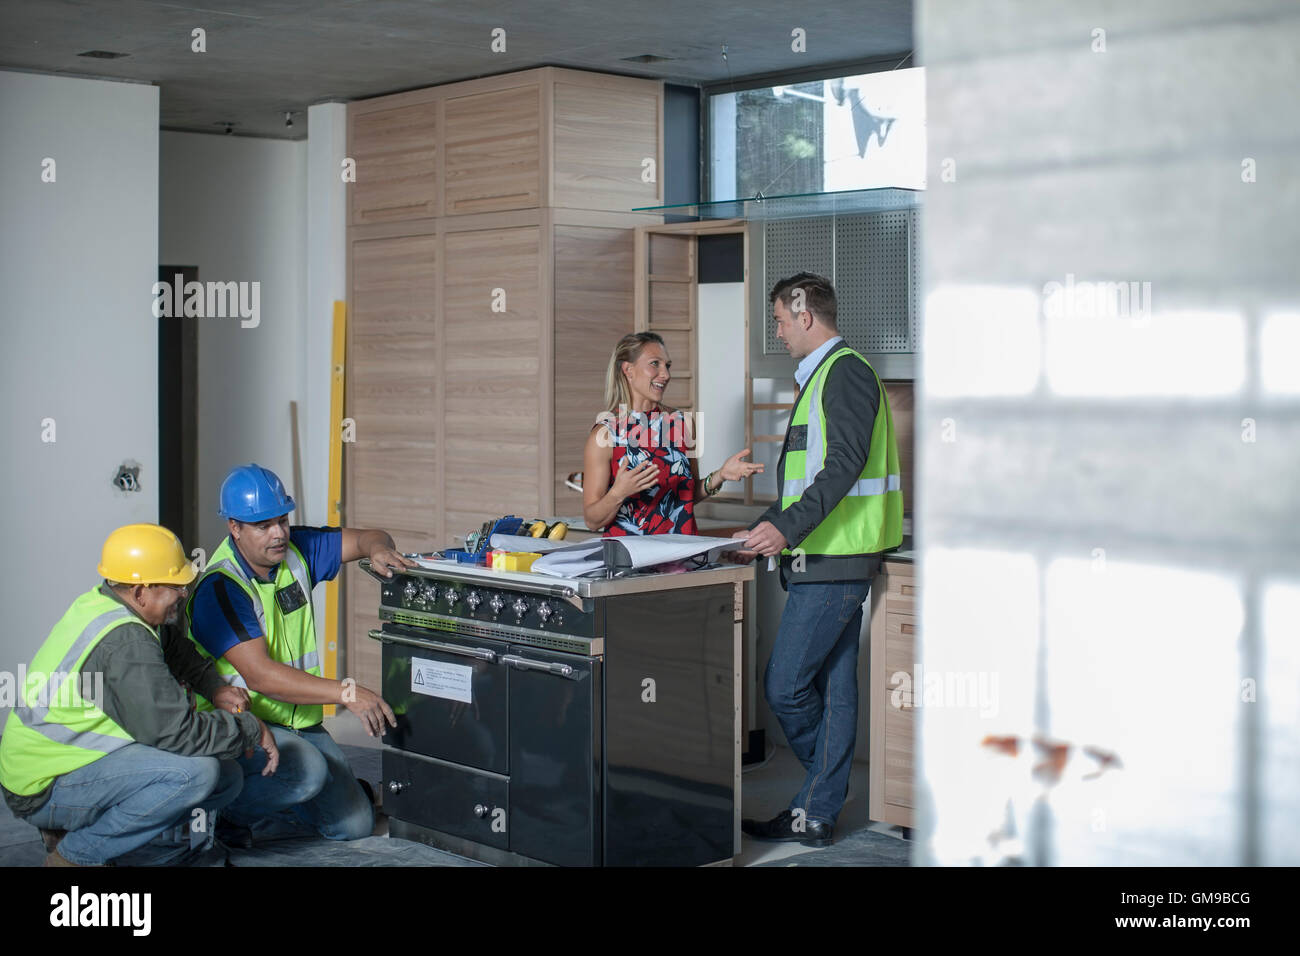 Architect and woman discussing kitchen furnishing Stock Photo